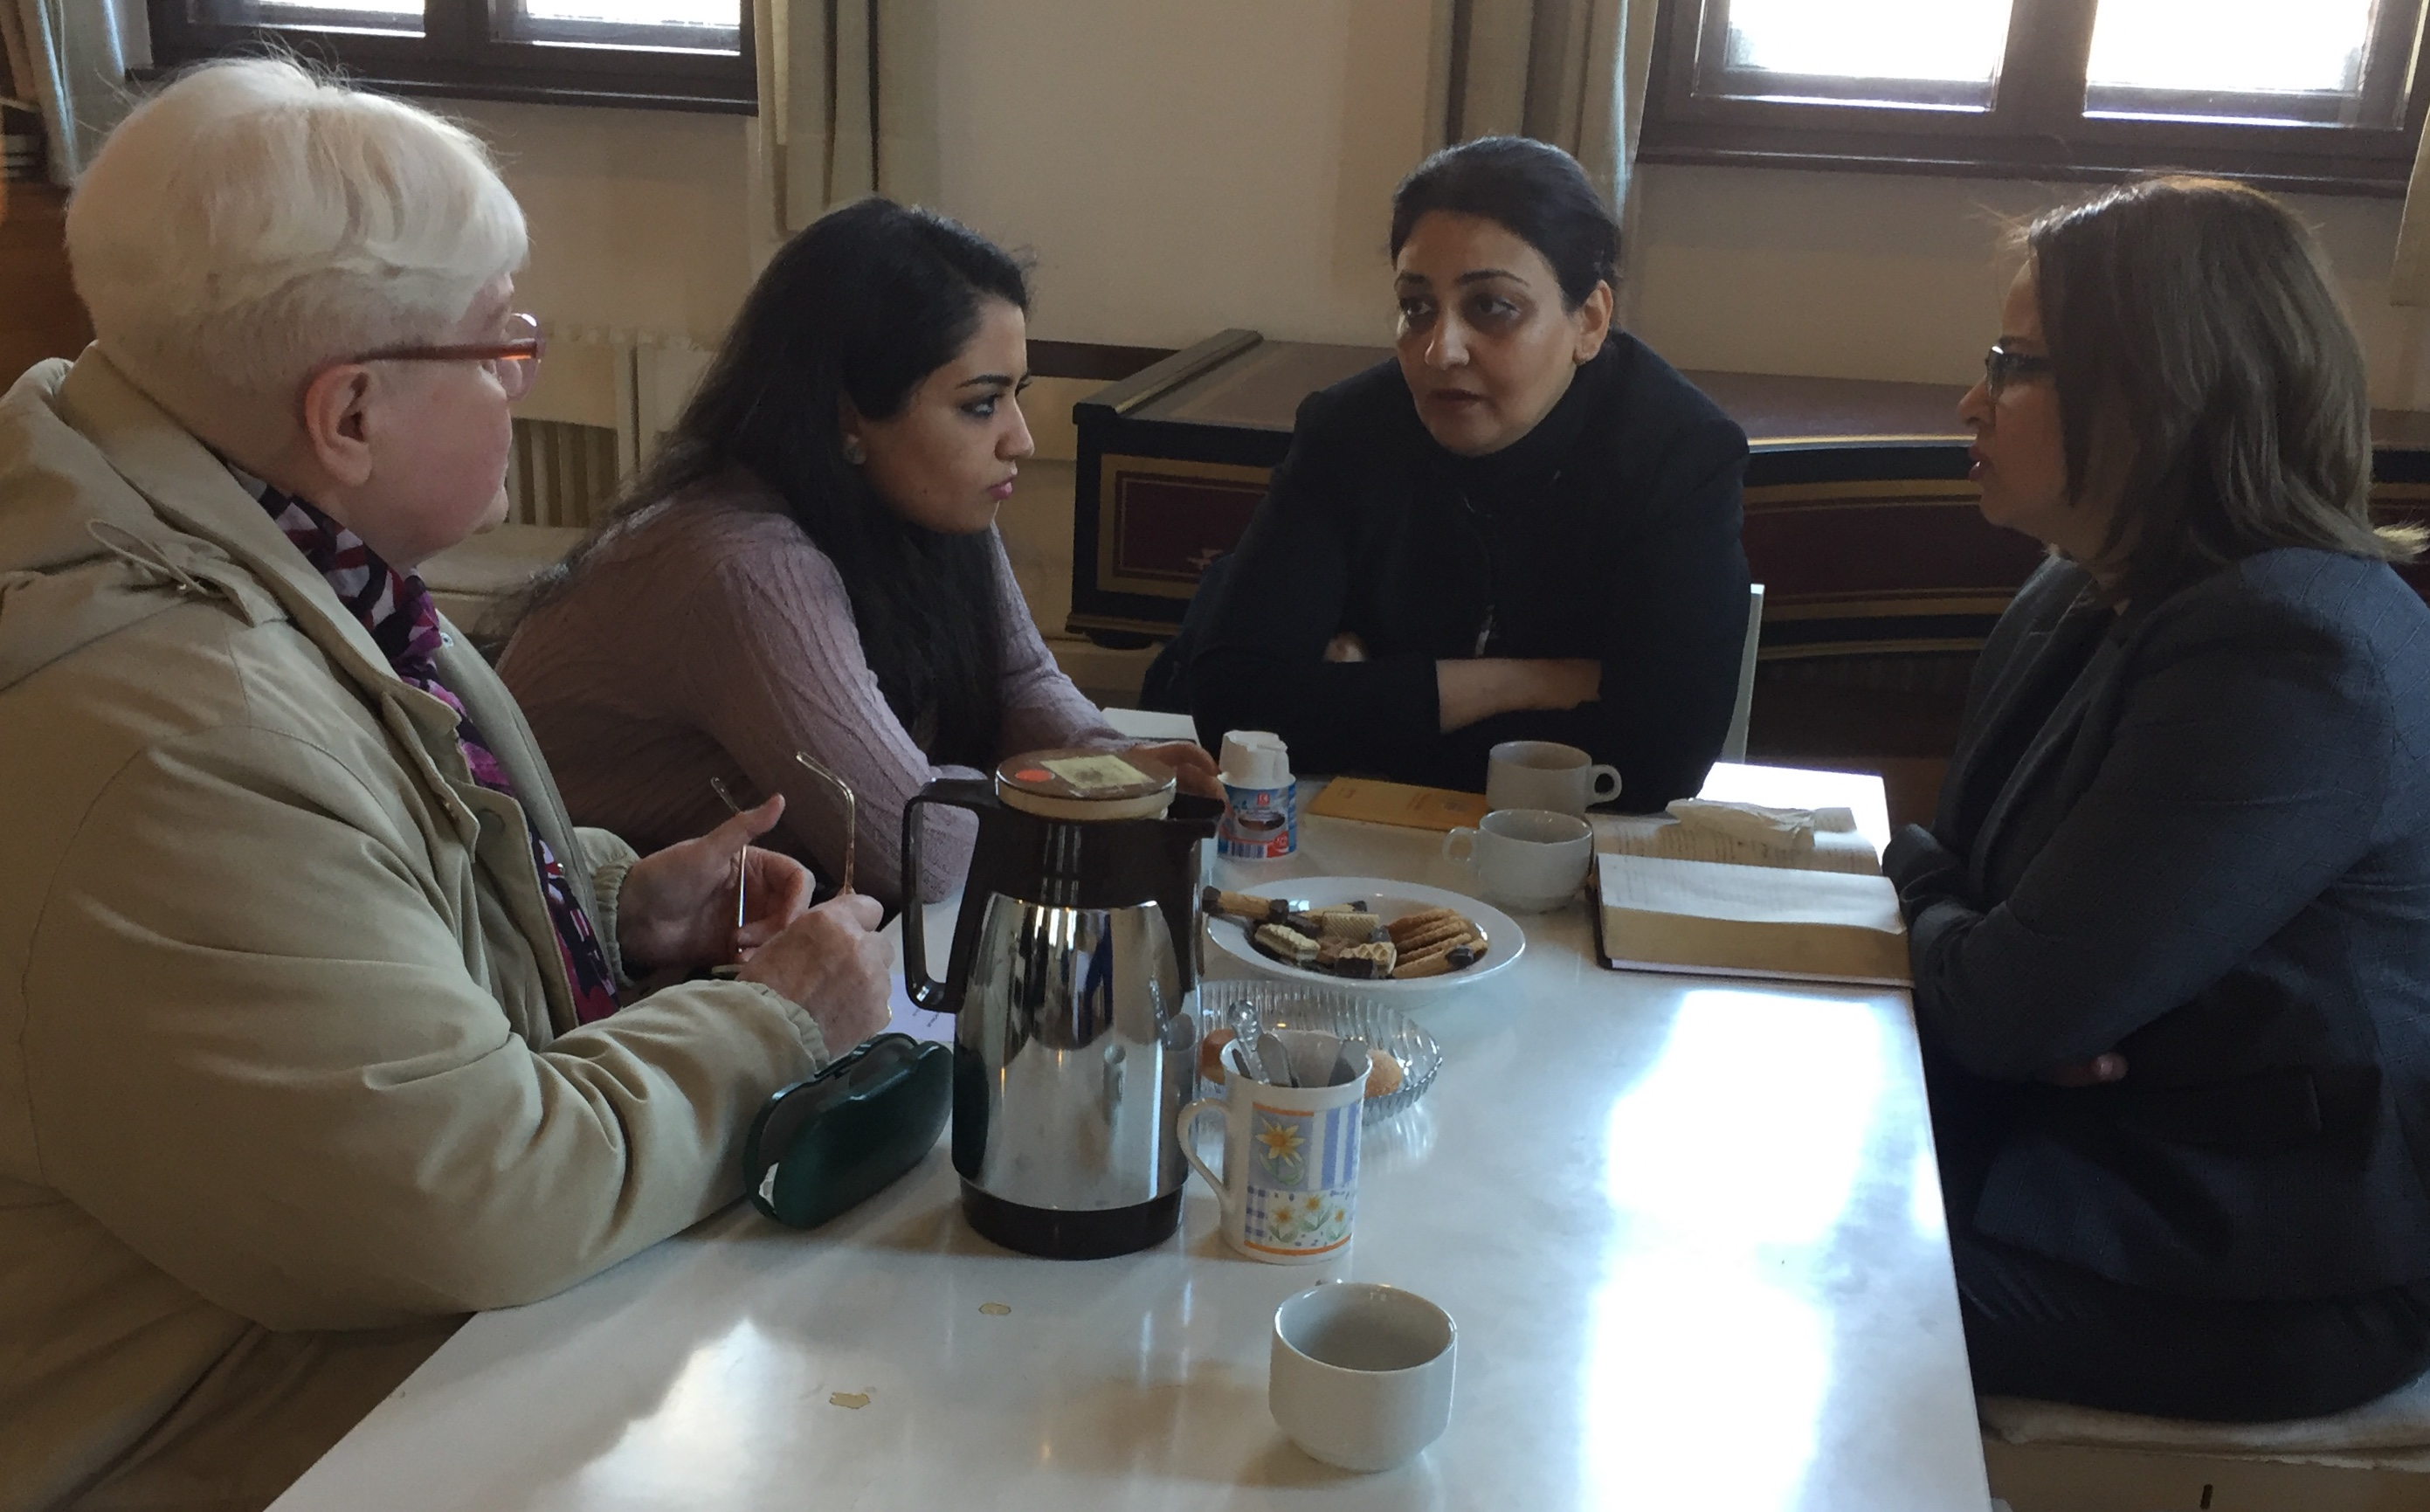 Women from the Iranian Church and German Church sharing conversation during a joint community gathering.